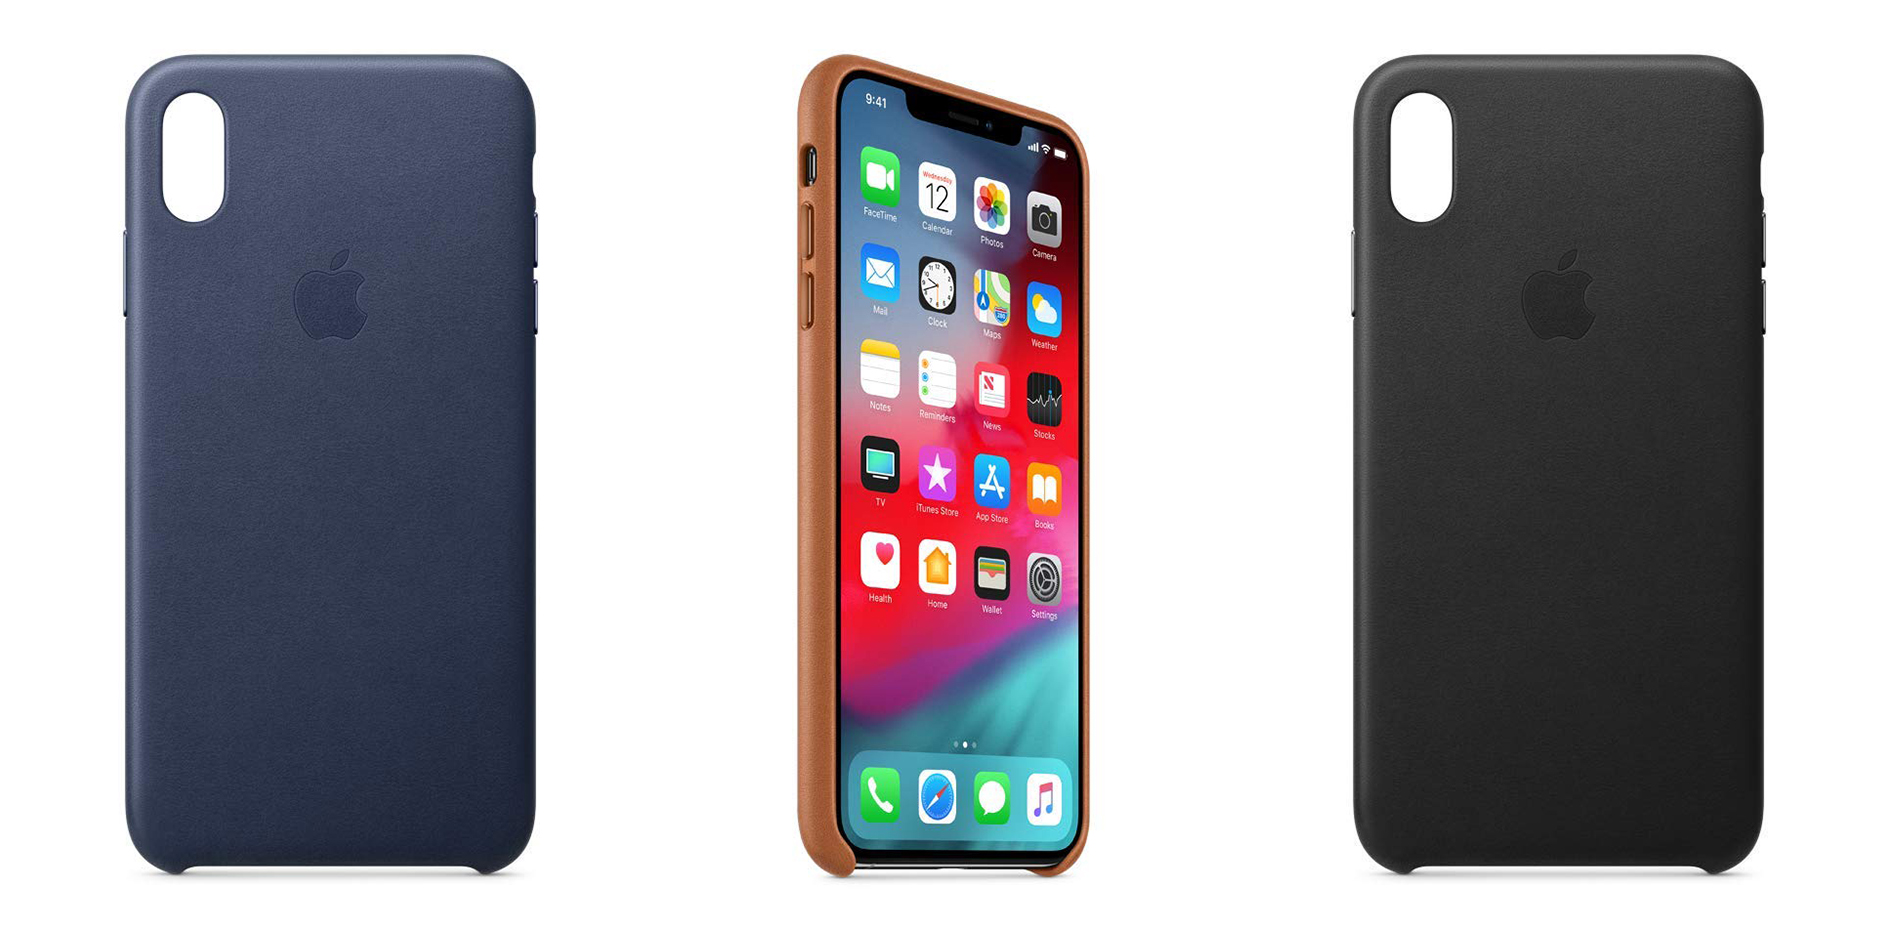 Wrap your iPhone XS Max in Apple's official leather cases from $39 (various styles available)